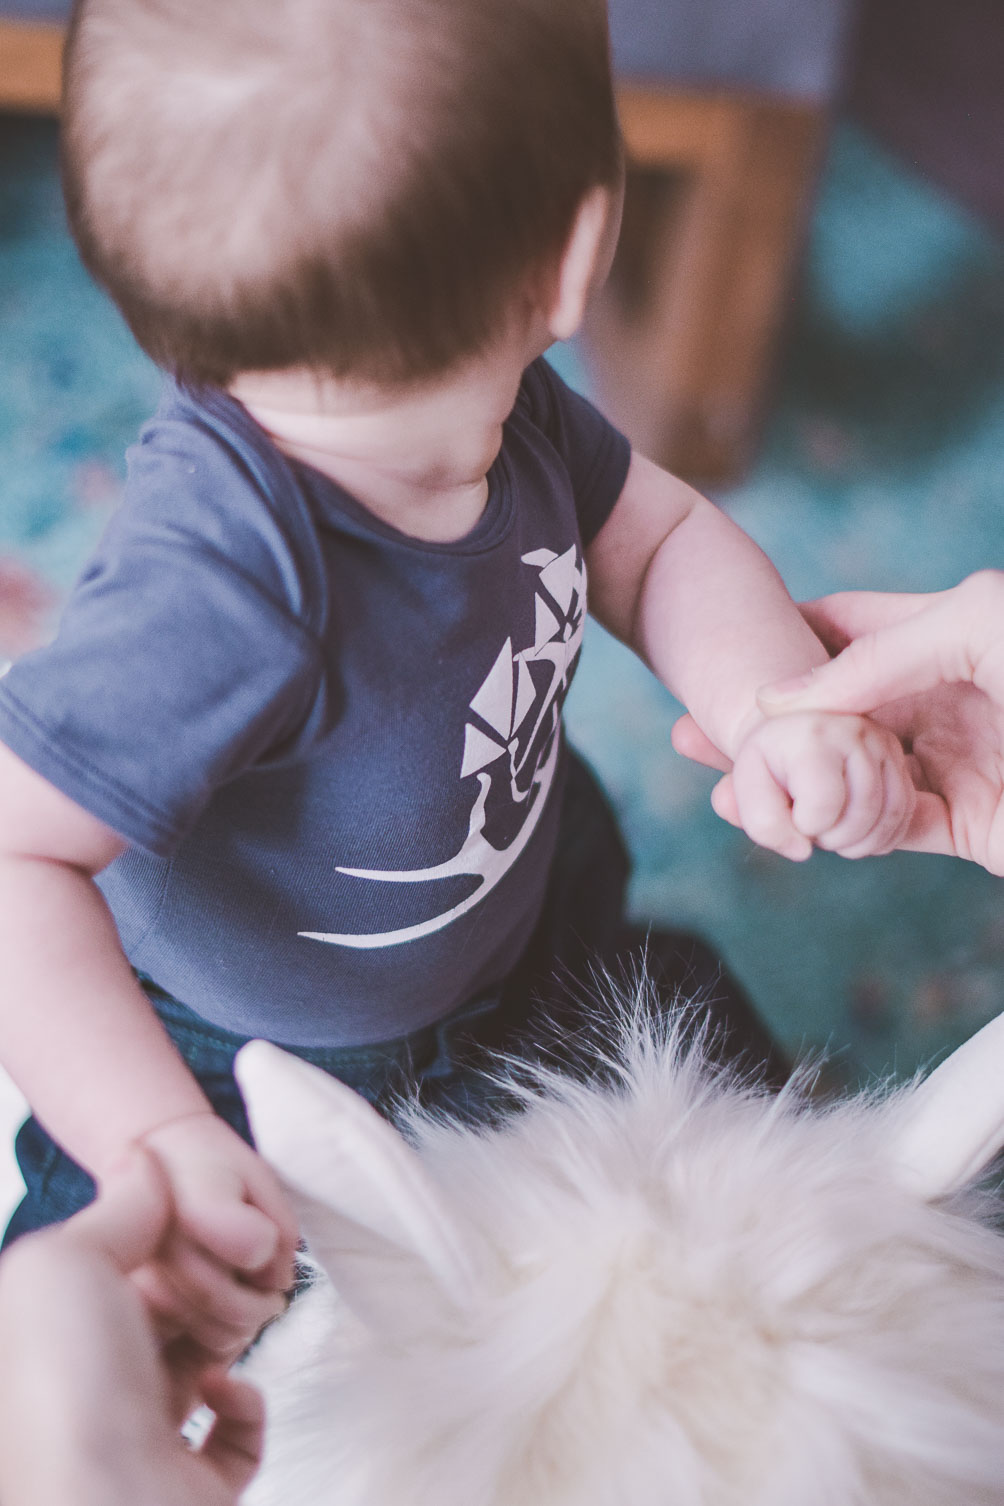 conscious consumer brand for ethical and sustainable baby clothes